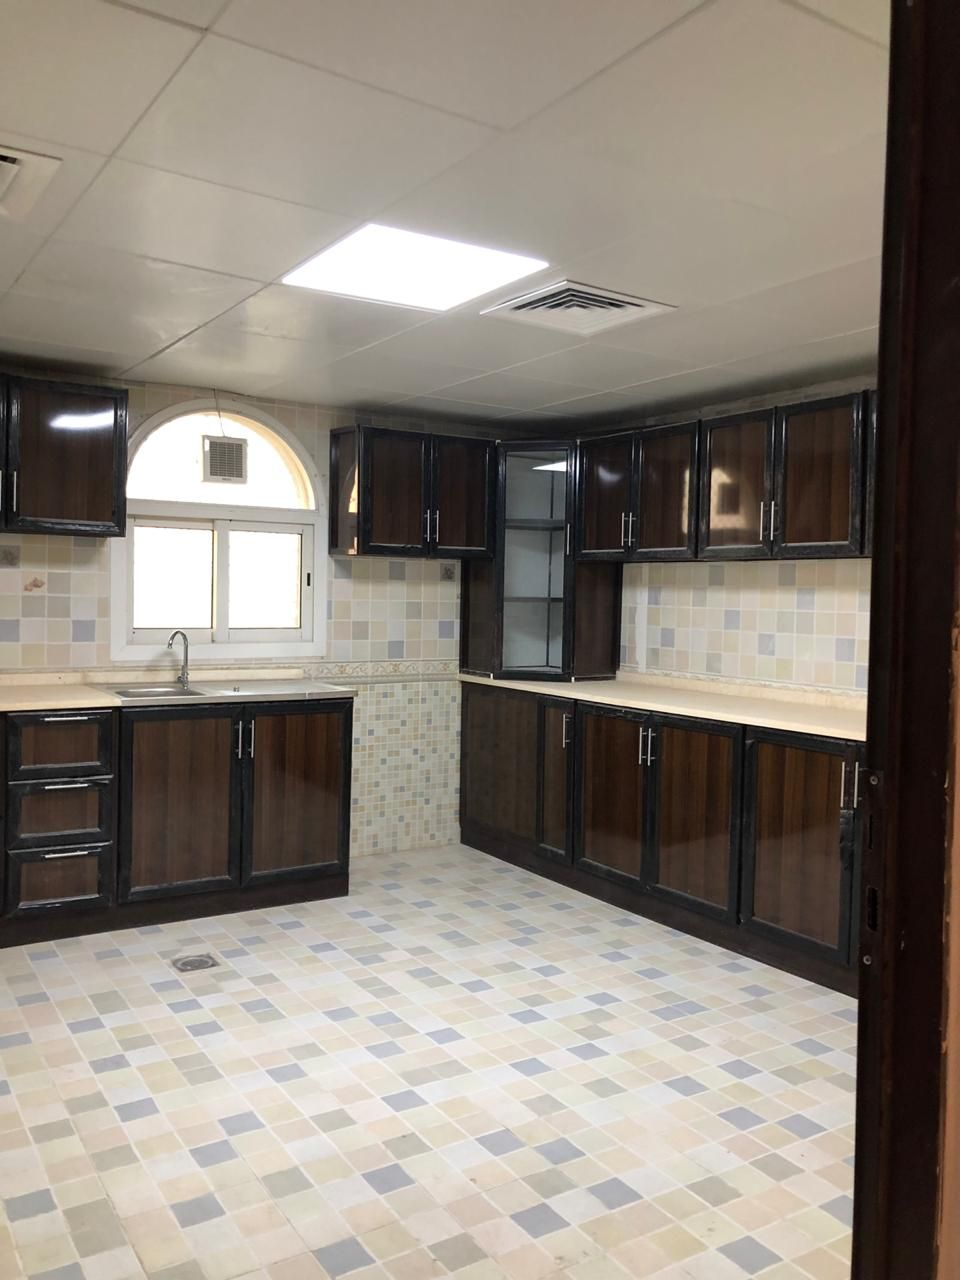 HOT DEAL! BIGGEST LAYOUT 2 BED ROOM HALL APARTMENT AT NICE LOCATION FOR RENT IN AL-SHAMKHAH